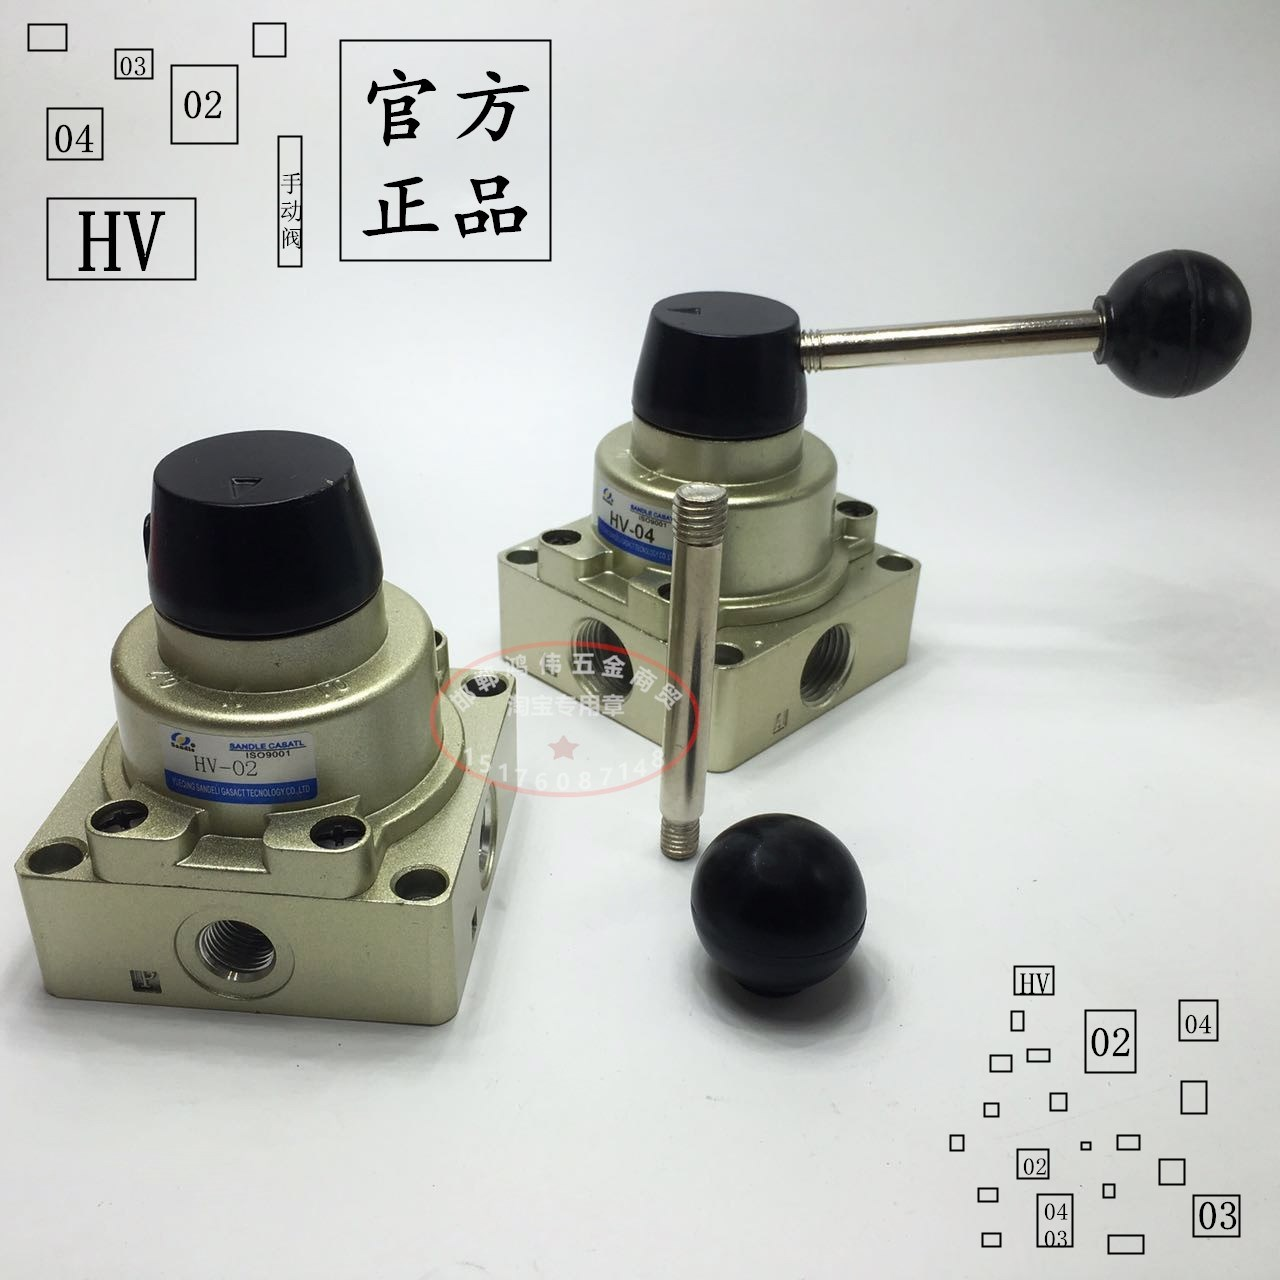 Hot four way manual valve, manual switch valve, manual reversing pneumatic valve HV-02/0304, three person control